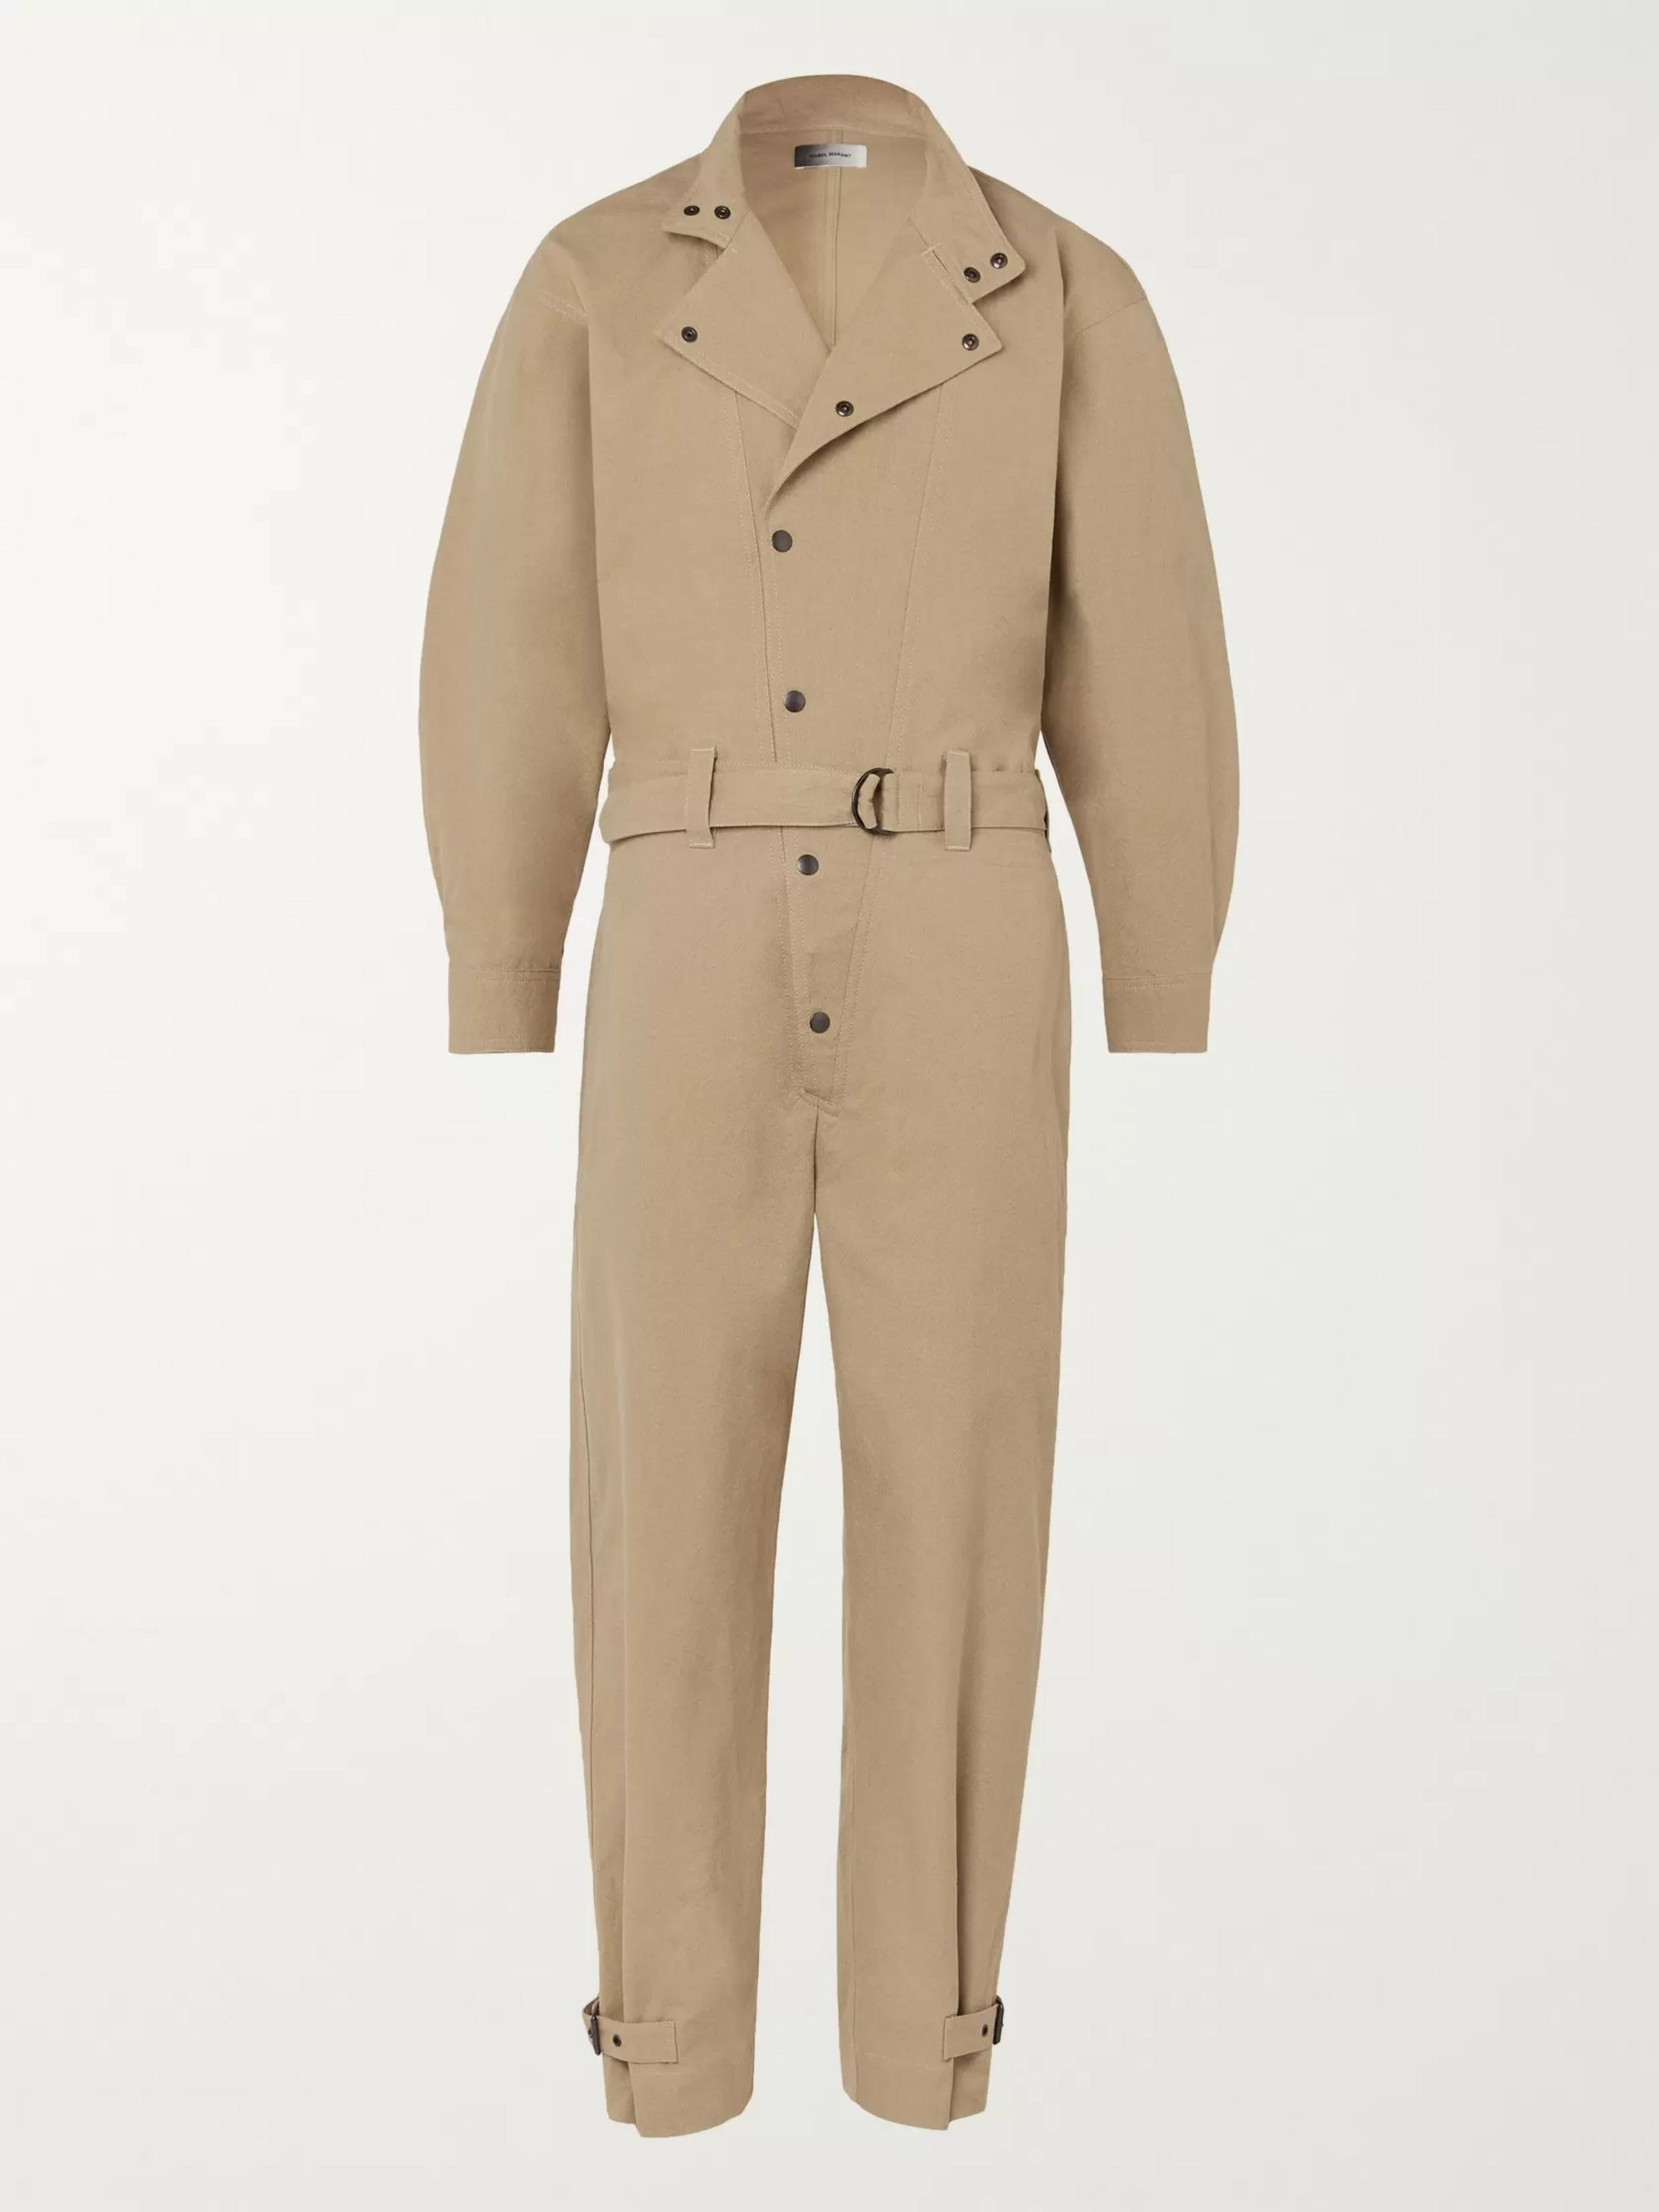 Guero Belted Cotton Twill Boilersuit by Isabel Marant